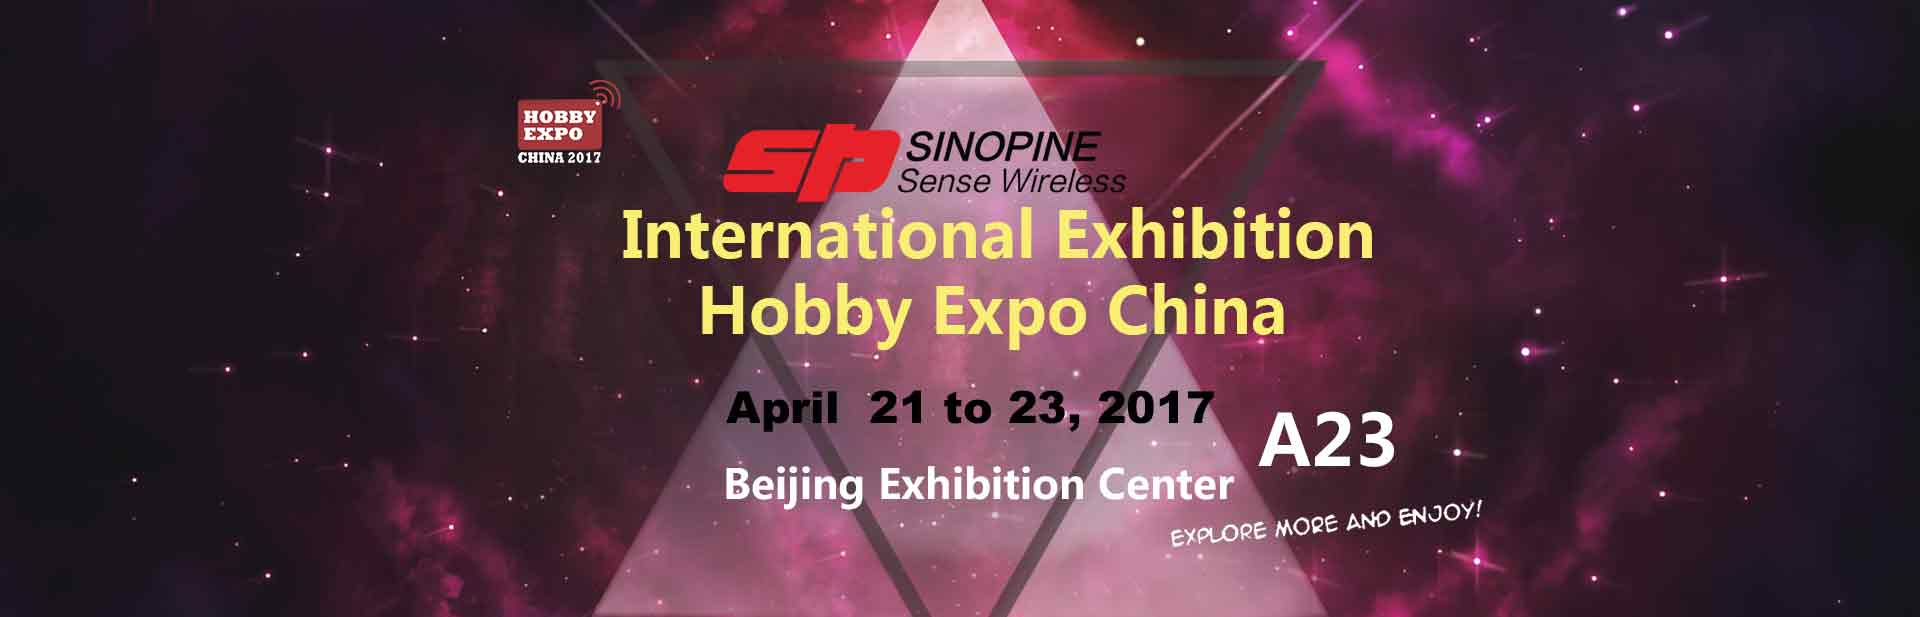 Hobby Expo China 2017--SINOPINE is waiting for you